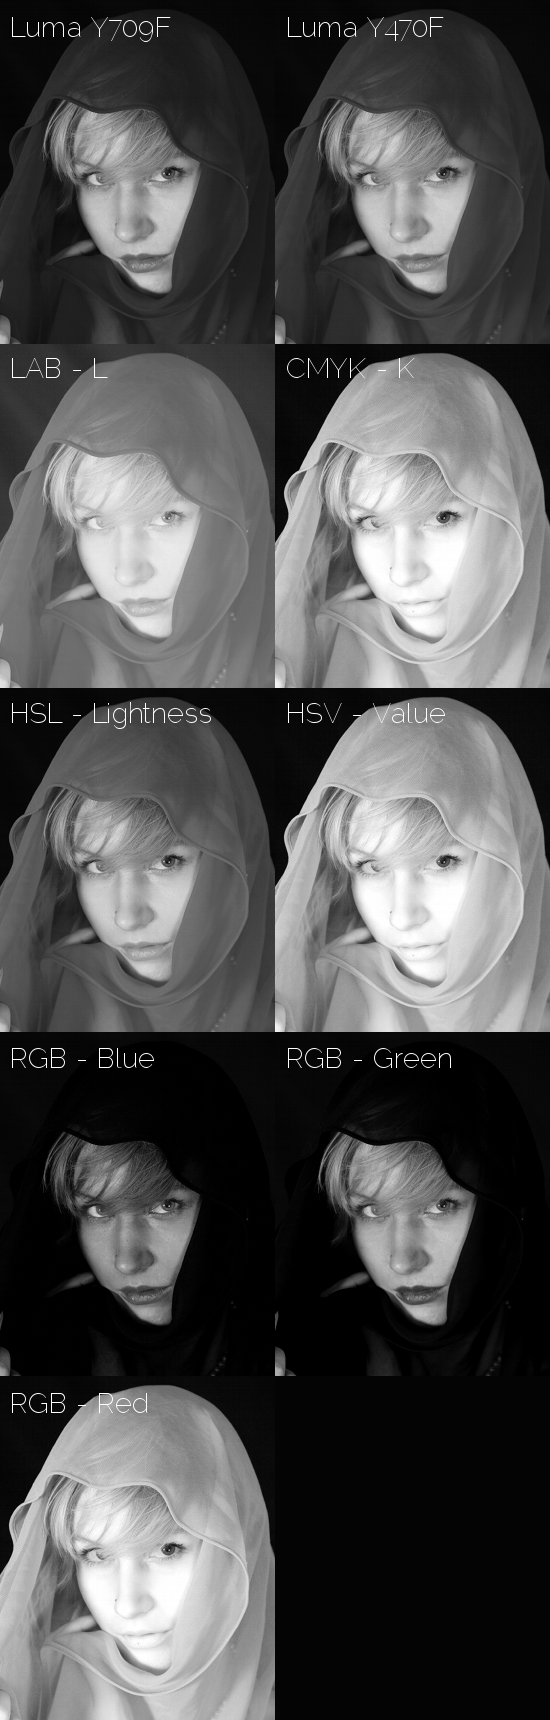 Grid of B&W converted images in GIMP using different color decompositions (grayscale).